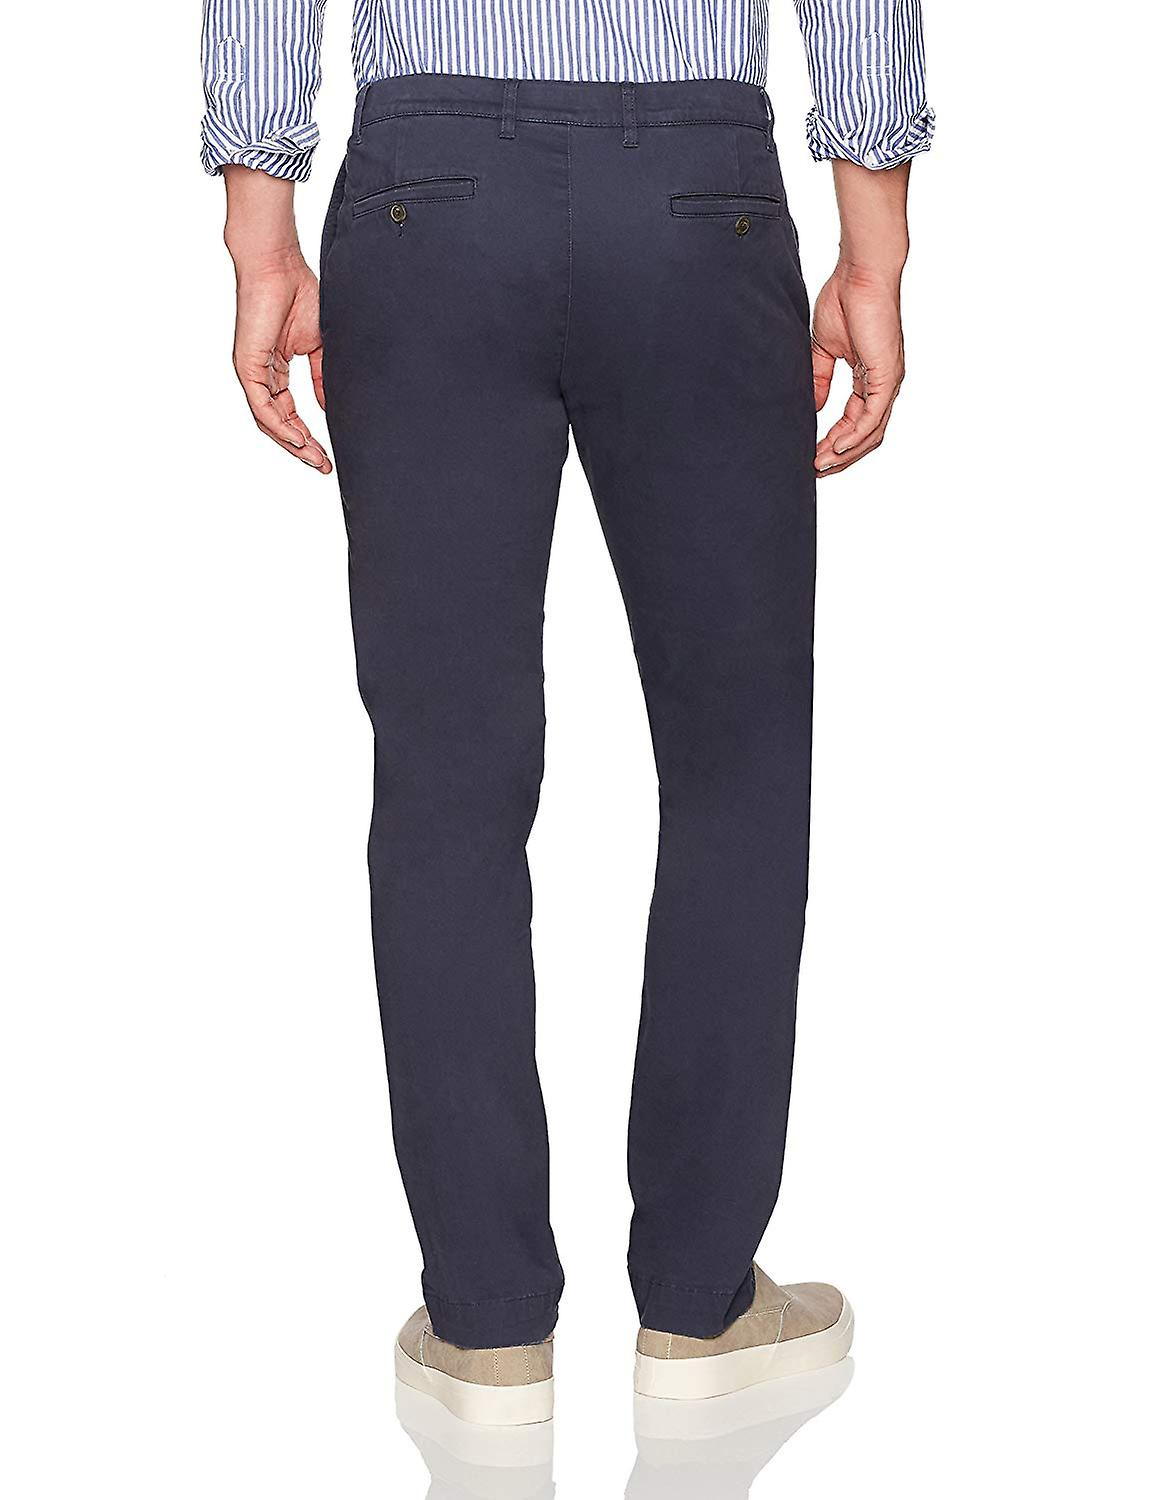 Goodthreads Hombres's Slim-Fit Washed Stretch Chino Pant, Navy, 38W x 34L